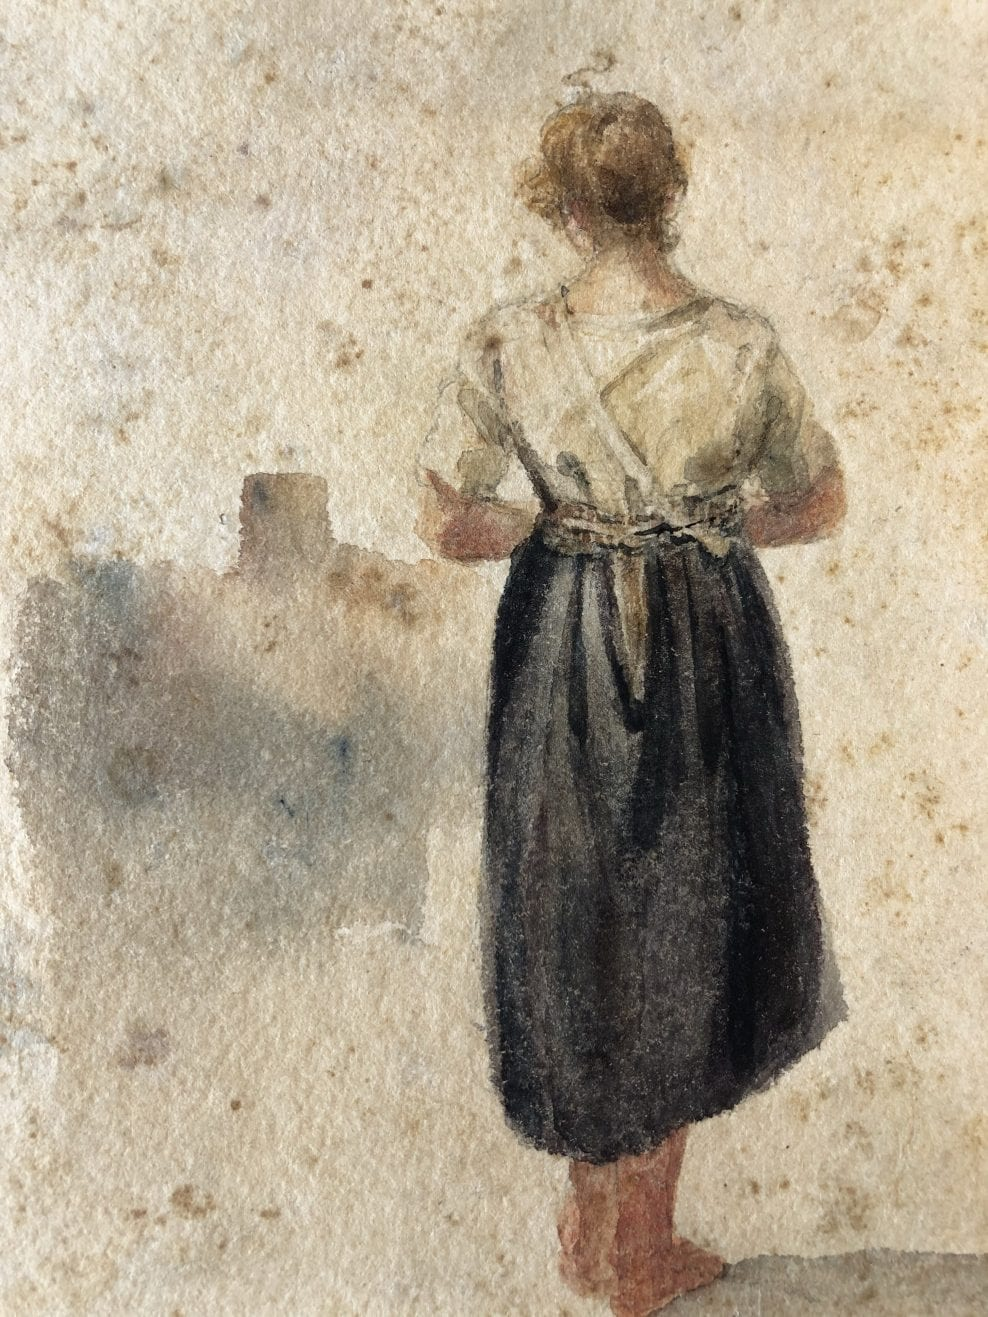 Watercolours. 18th – 20th Century. Examples of light and framing damage. Preventative and practical conservation